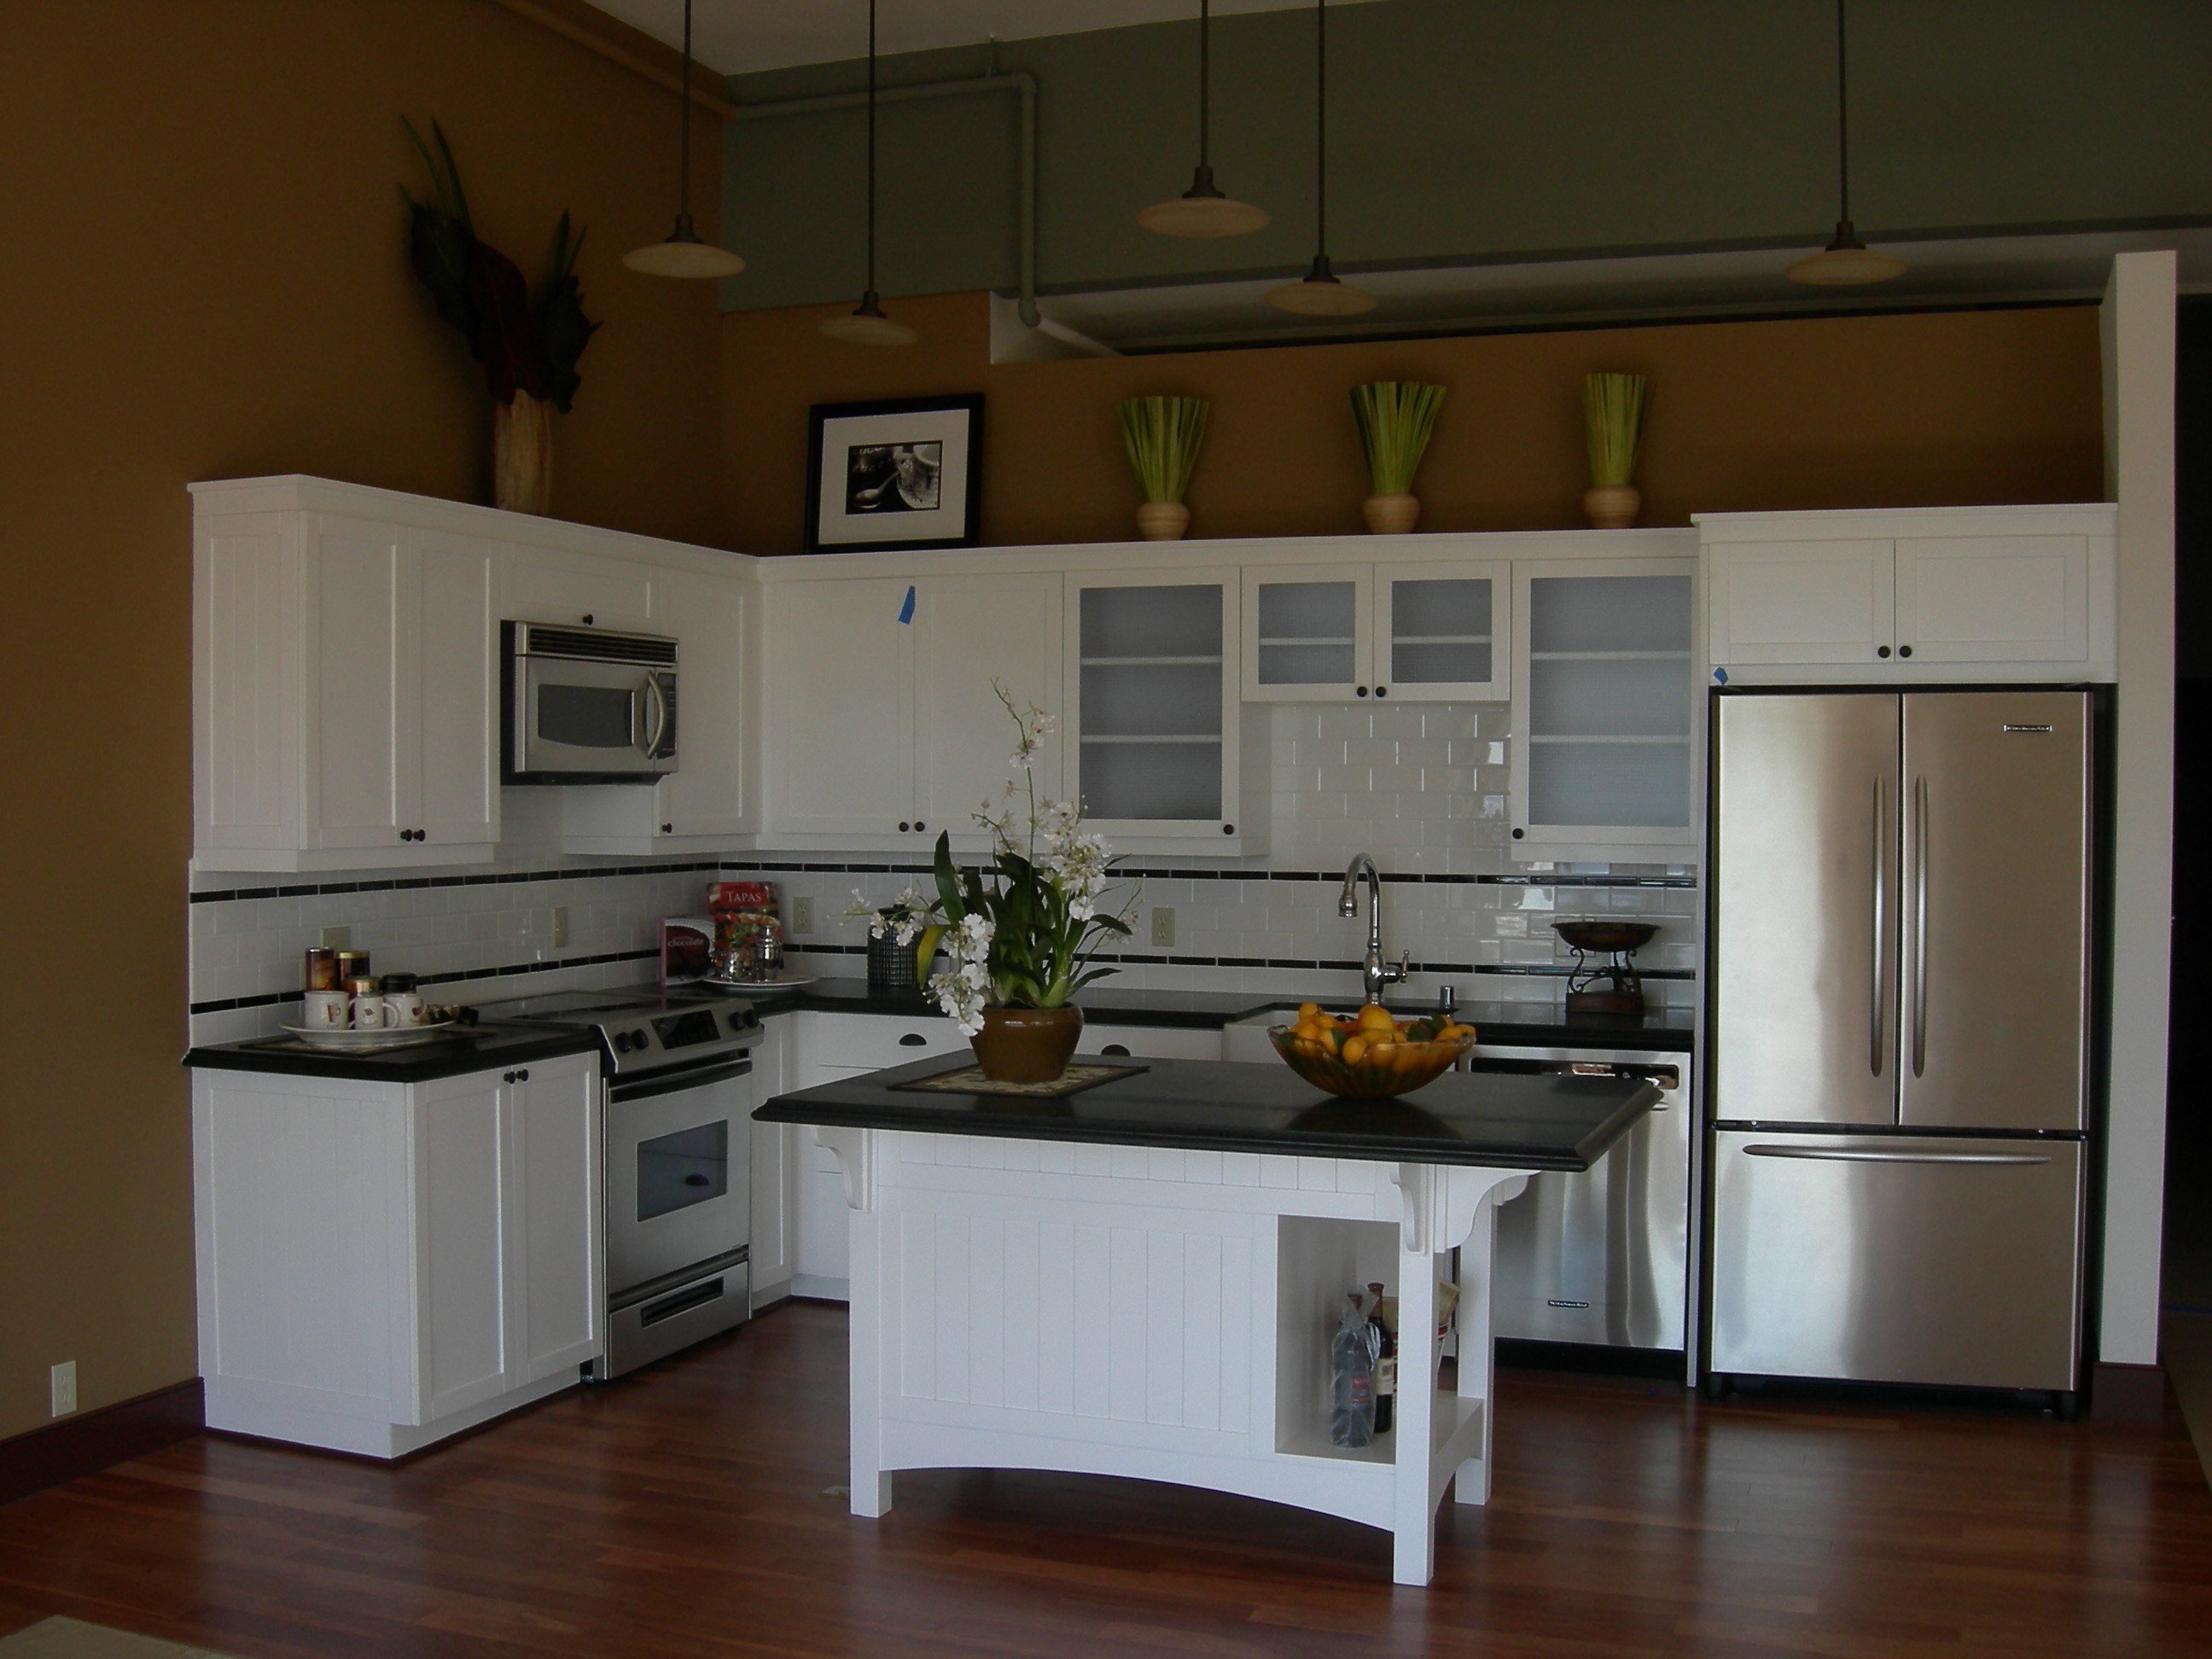 File seattle queen anne high apartment Apartment kitchen design